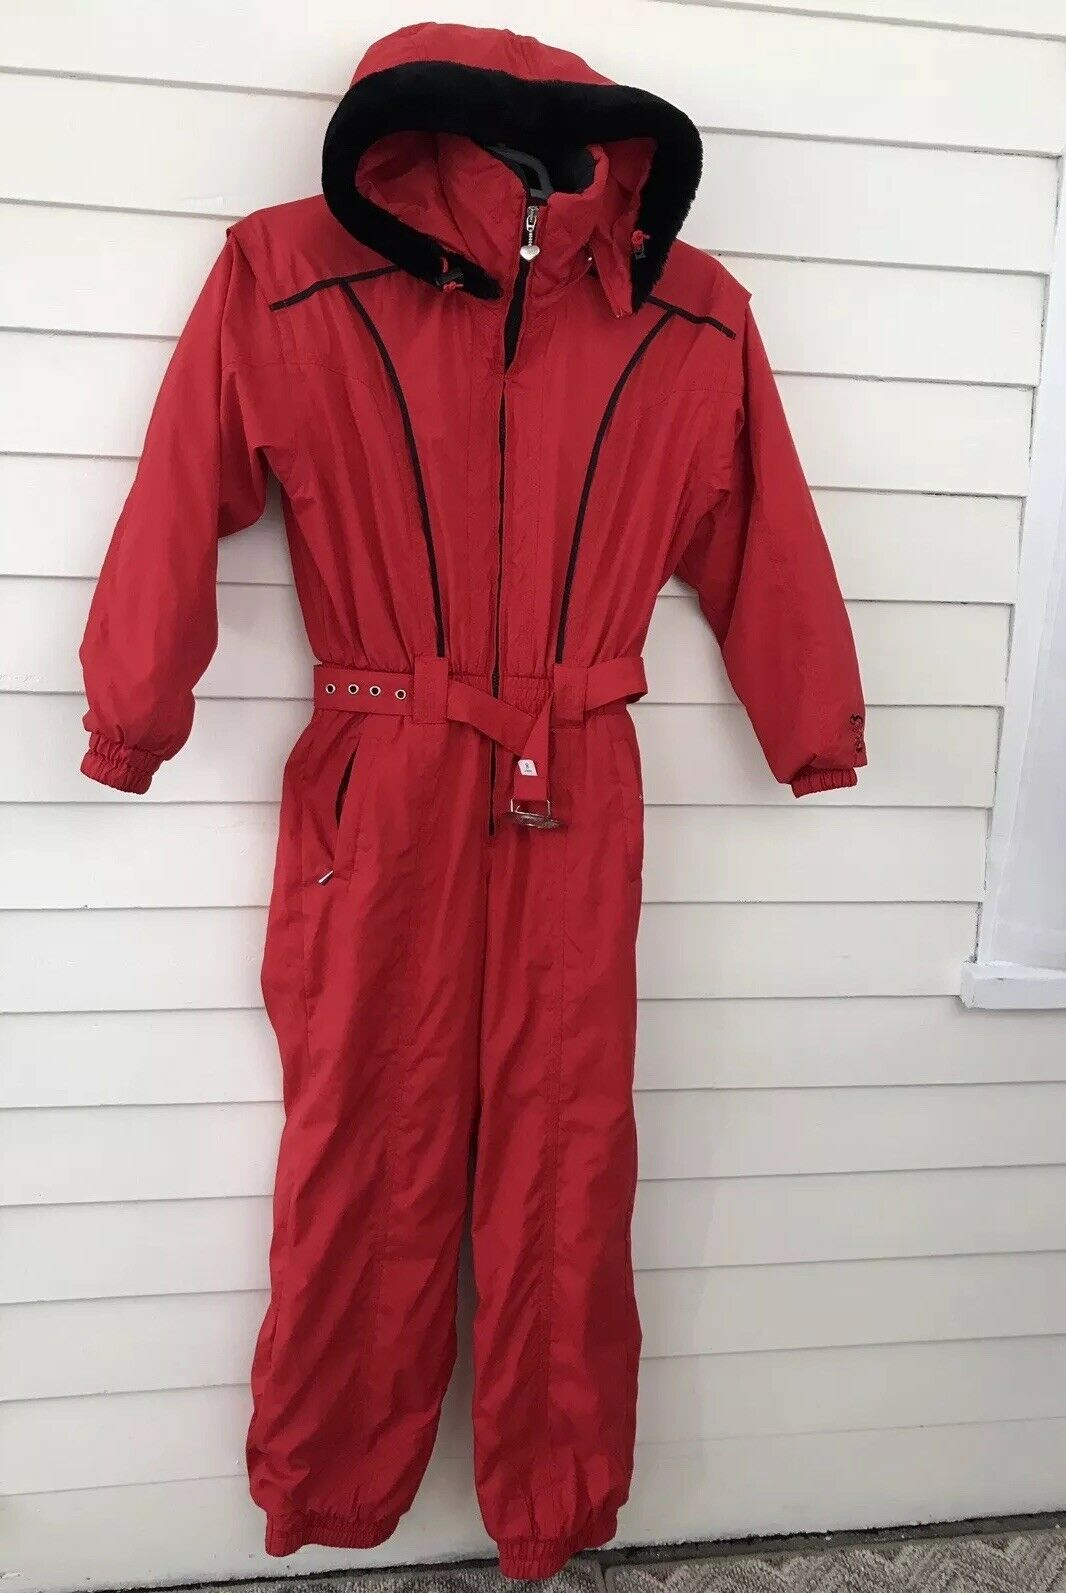 Women's Obermeyer 8 Jasmine Ski Suit One Piece Red Full Body Hoodie Vintage Belt